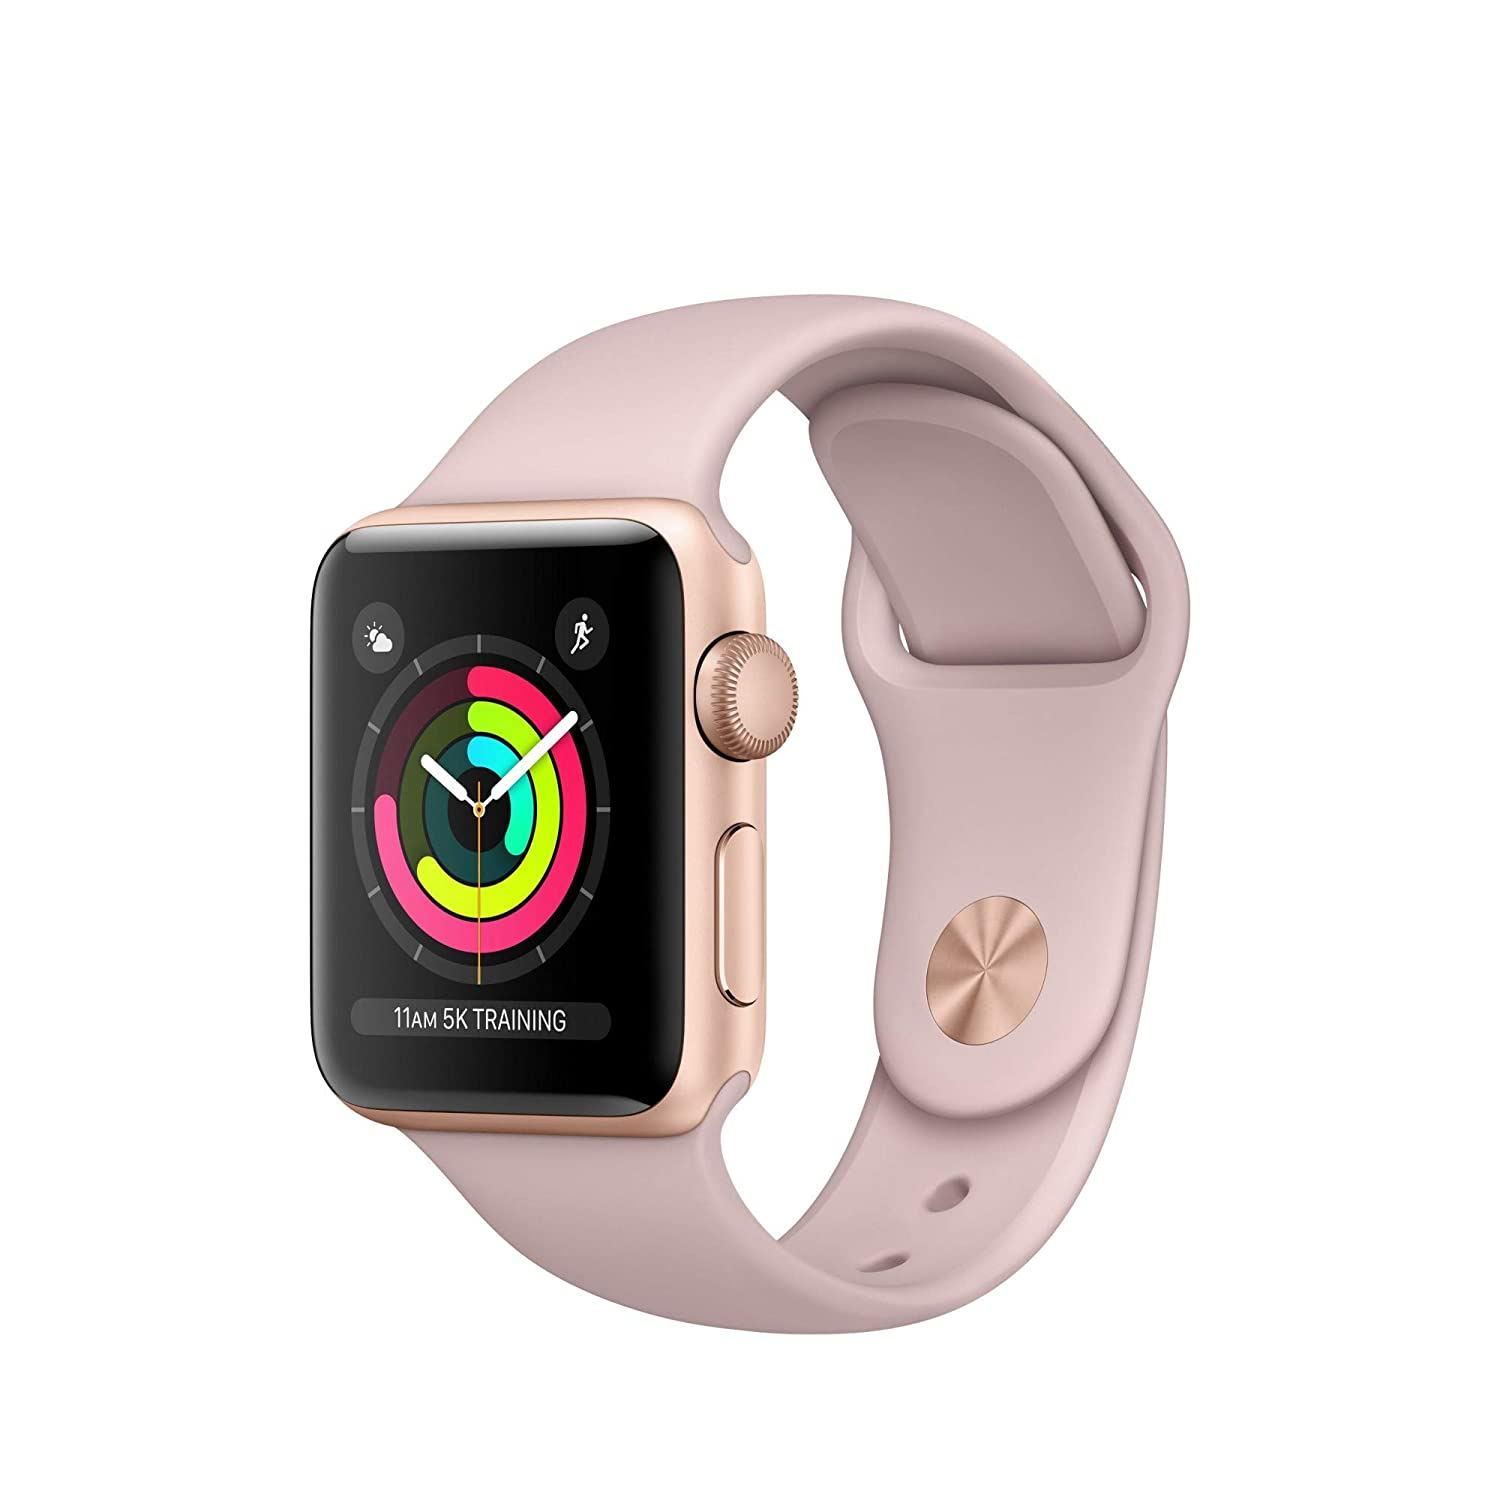 Apple Watch Series 3 Reloj Inteligente Oro OLED GPS (satélite): Amazon.es: Electrónica